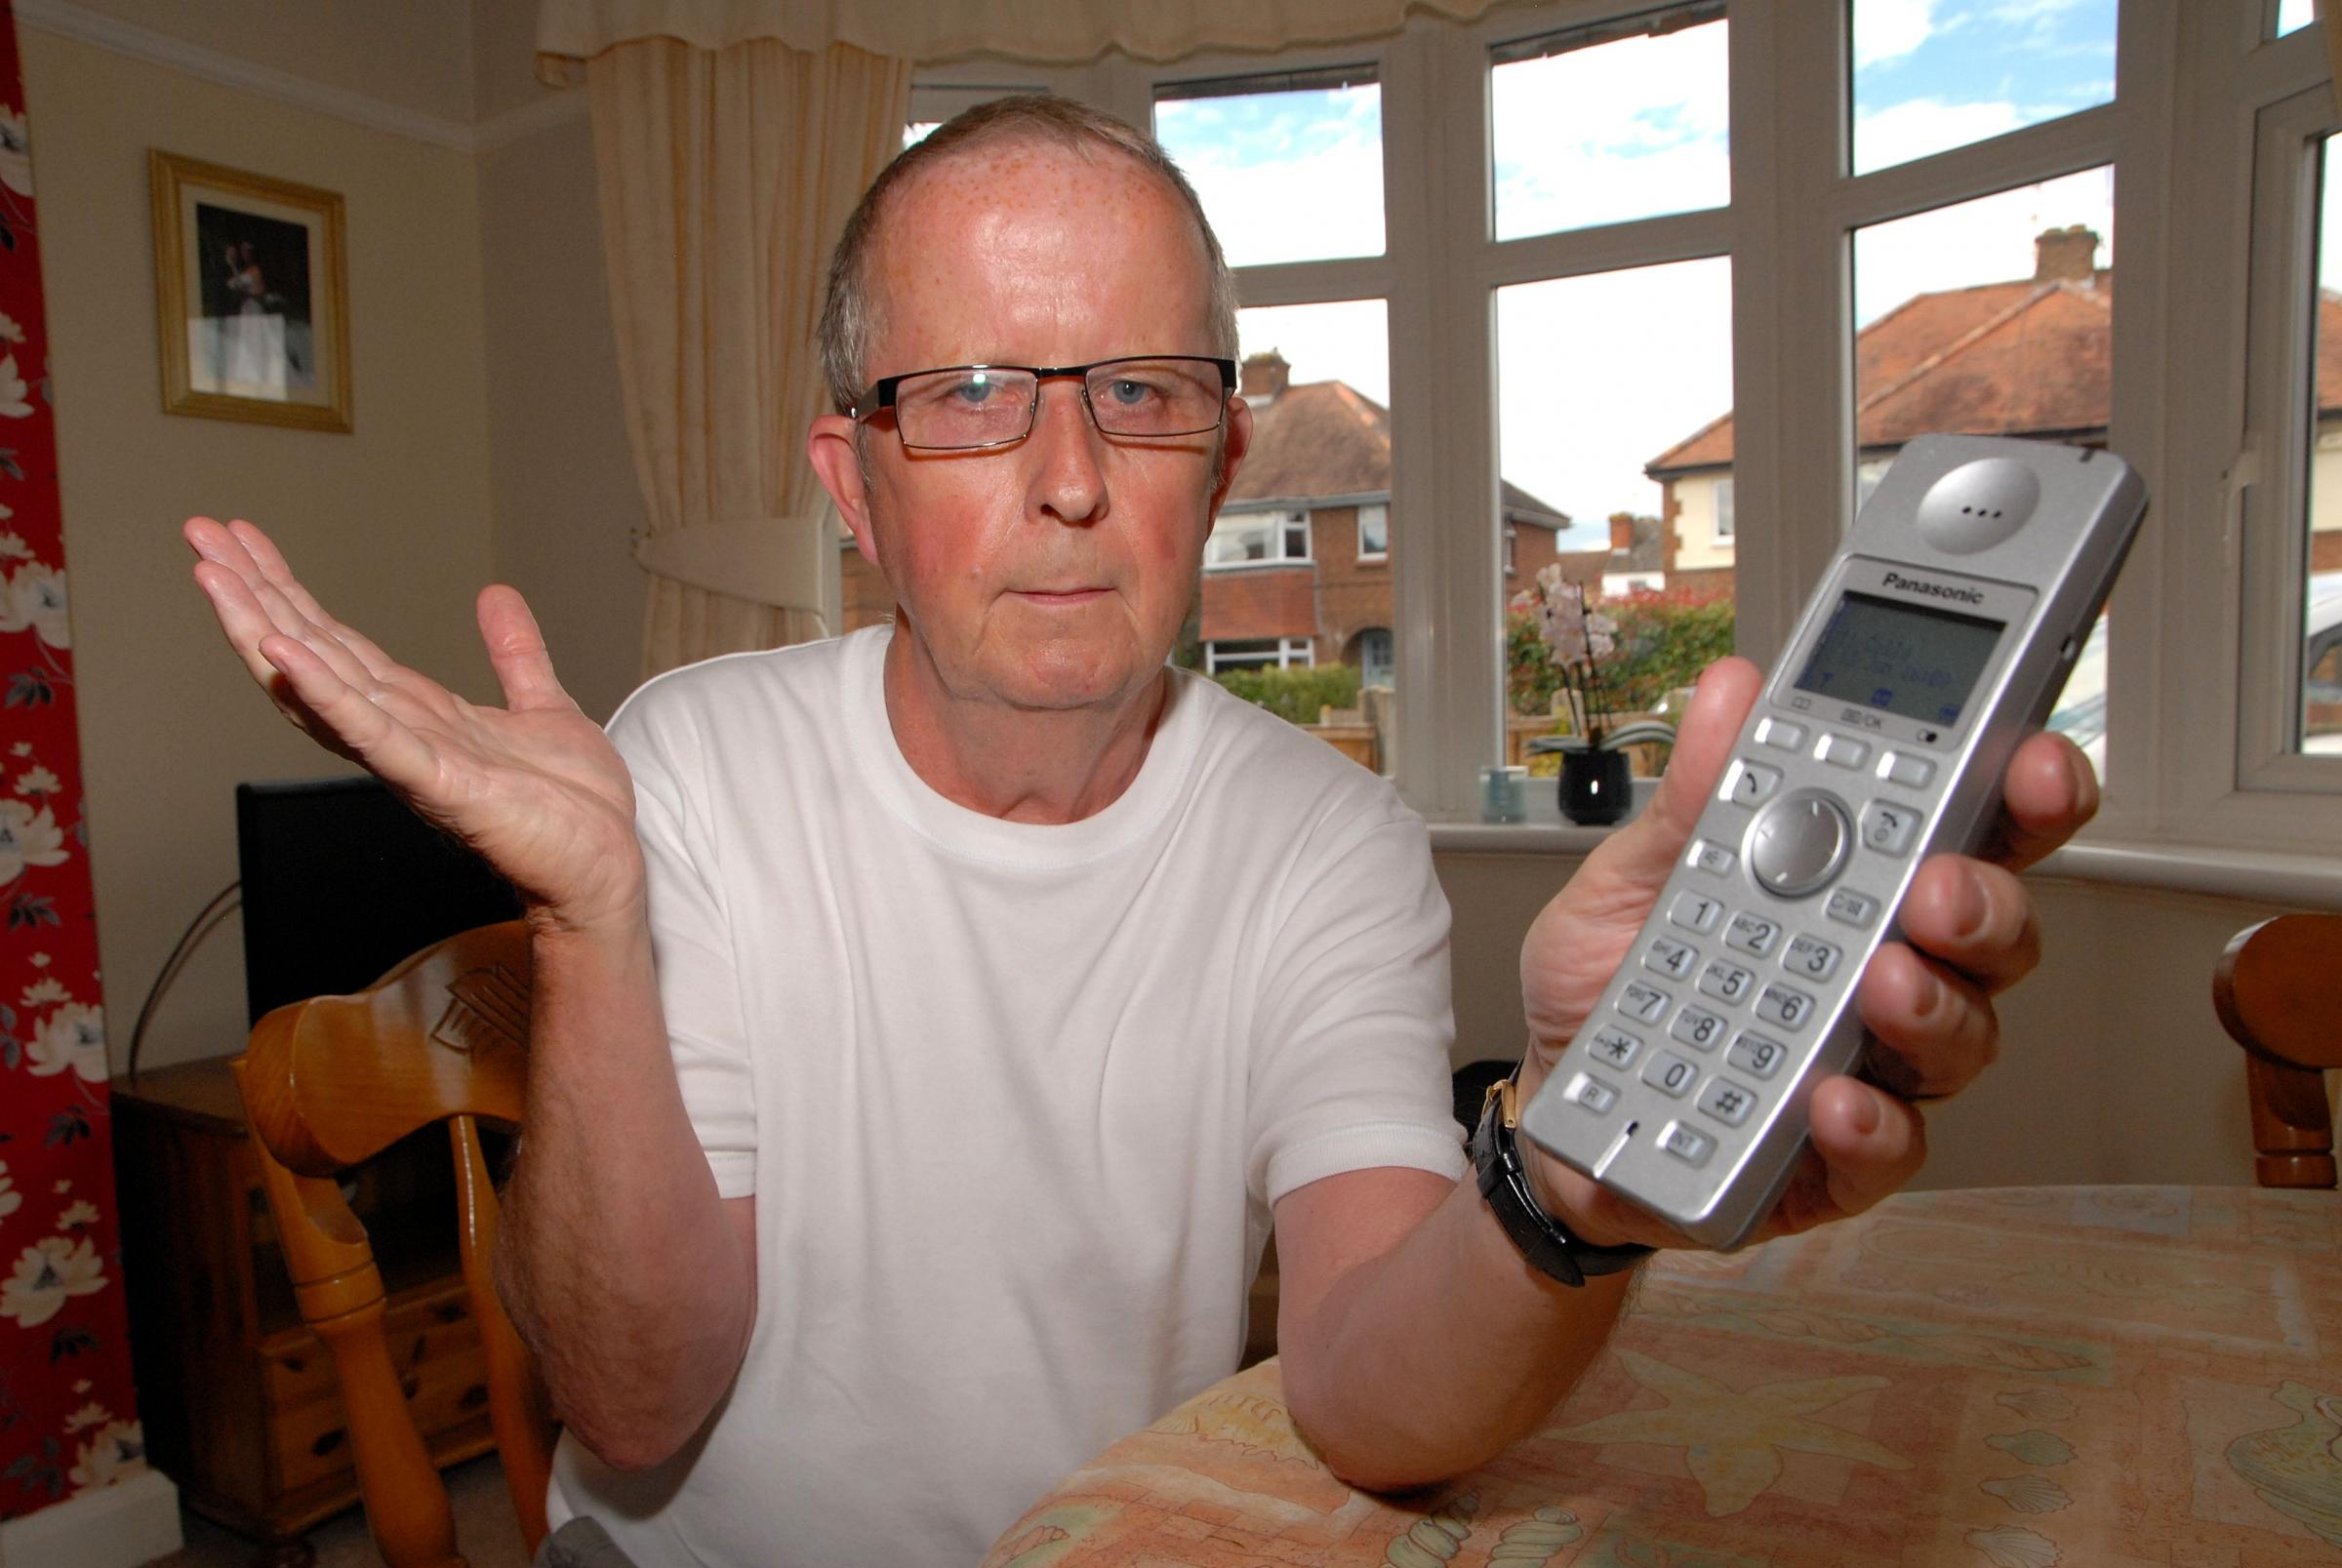 Pensioner gets £45 phone bill - for five-minute call